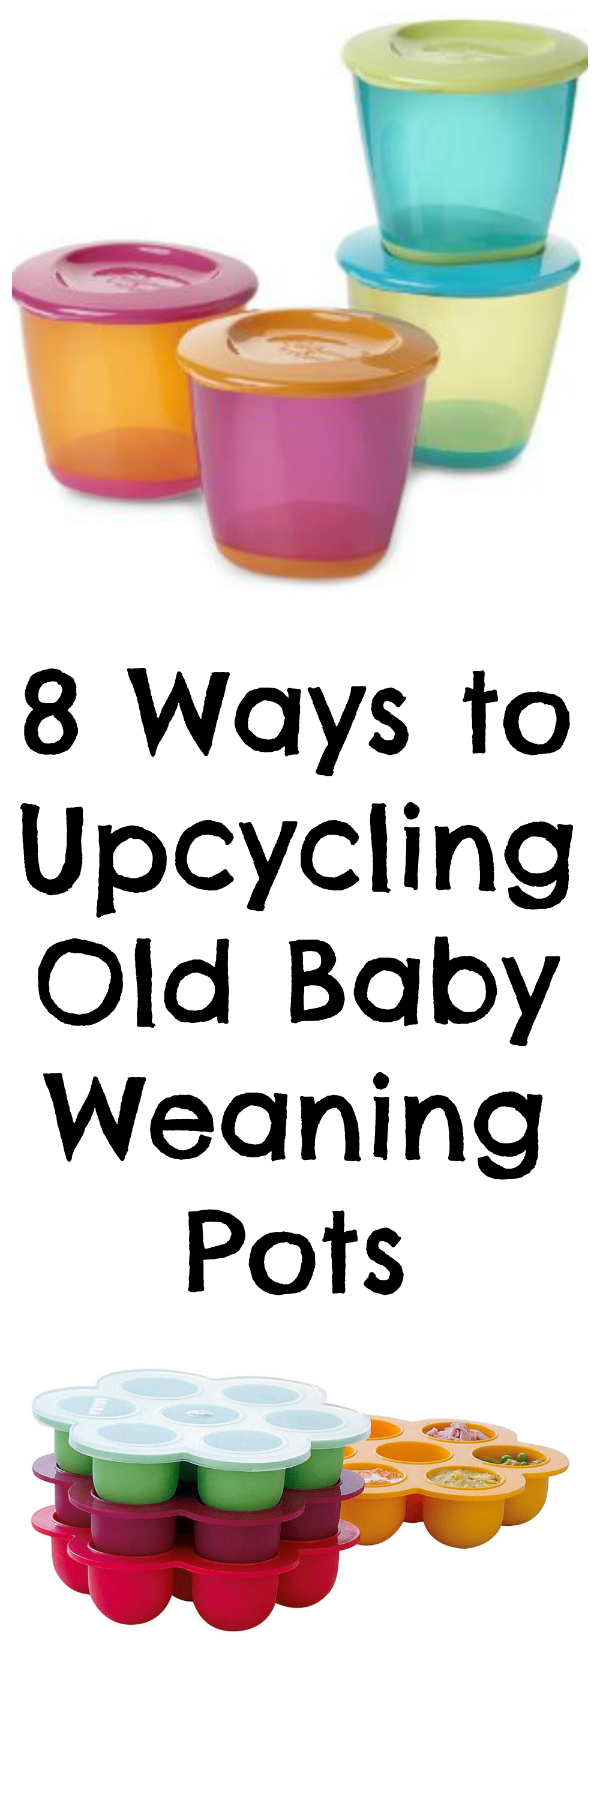 8 ways to up cycle your baby weaning pots, life hacks for mum via Toby & Roo :: daily inspiration for stylish parents and their kids.